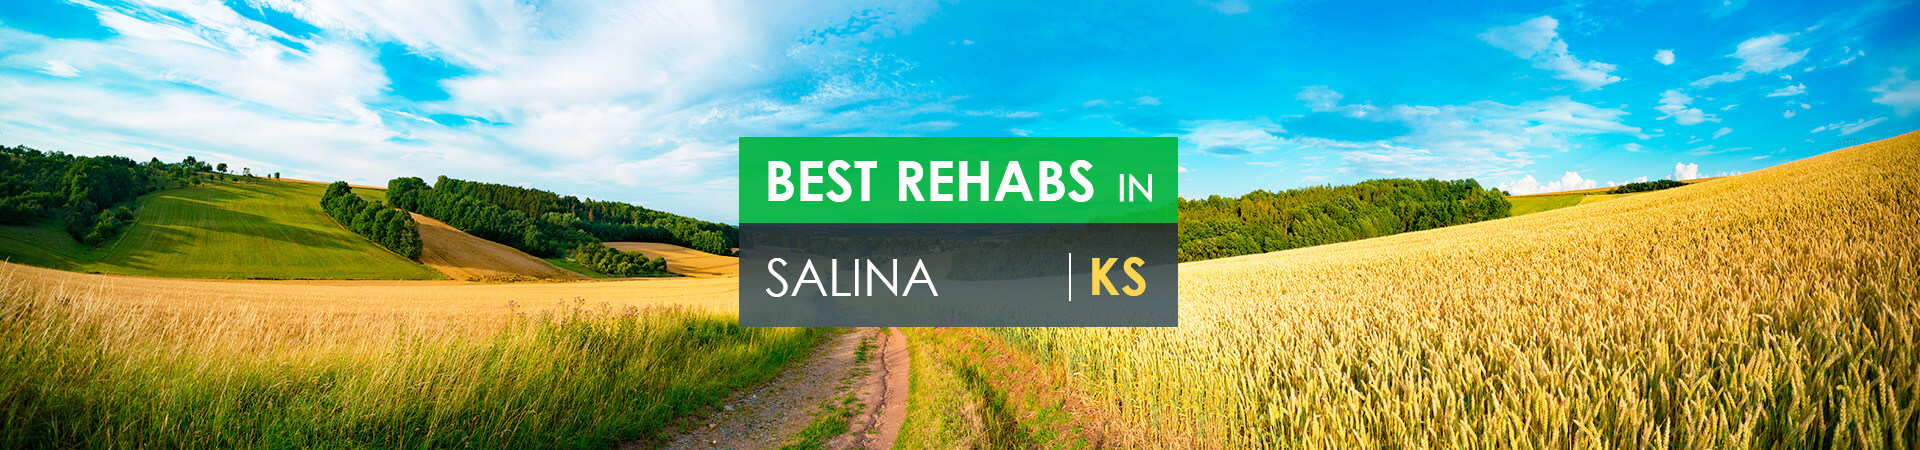 Best rehabs in Salina, KS